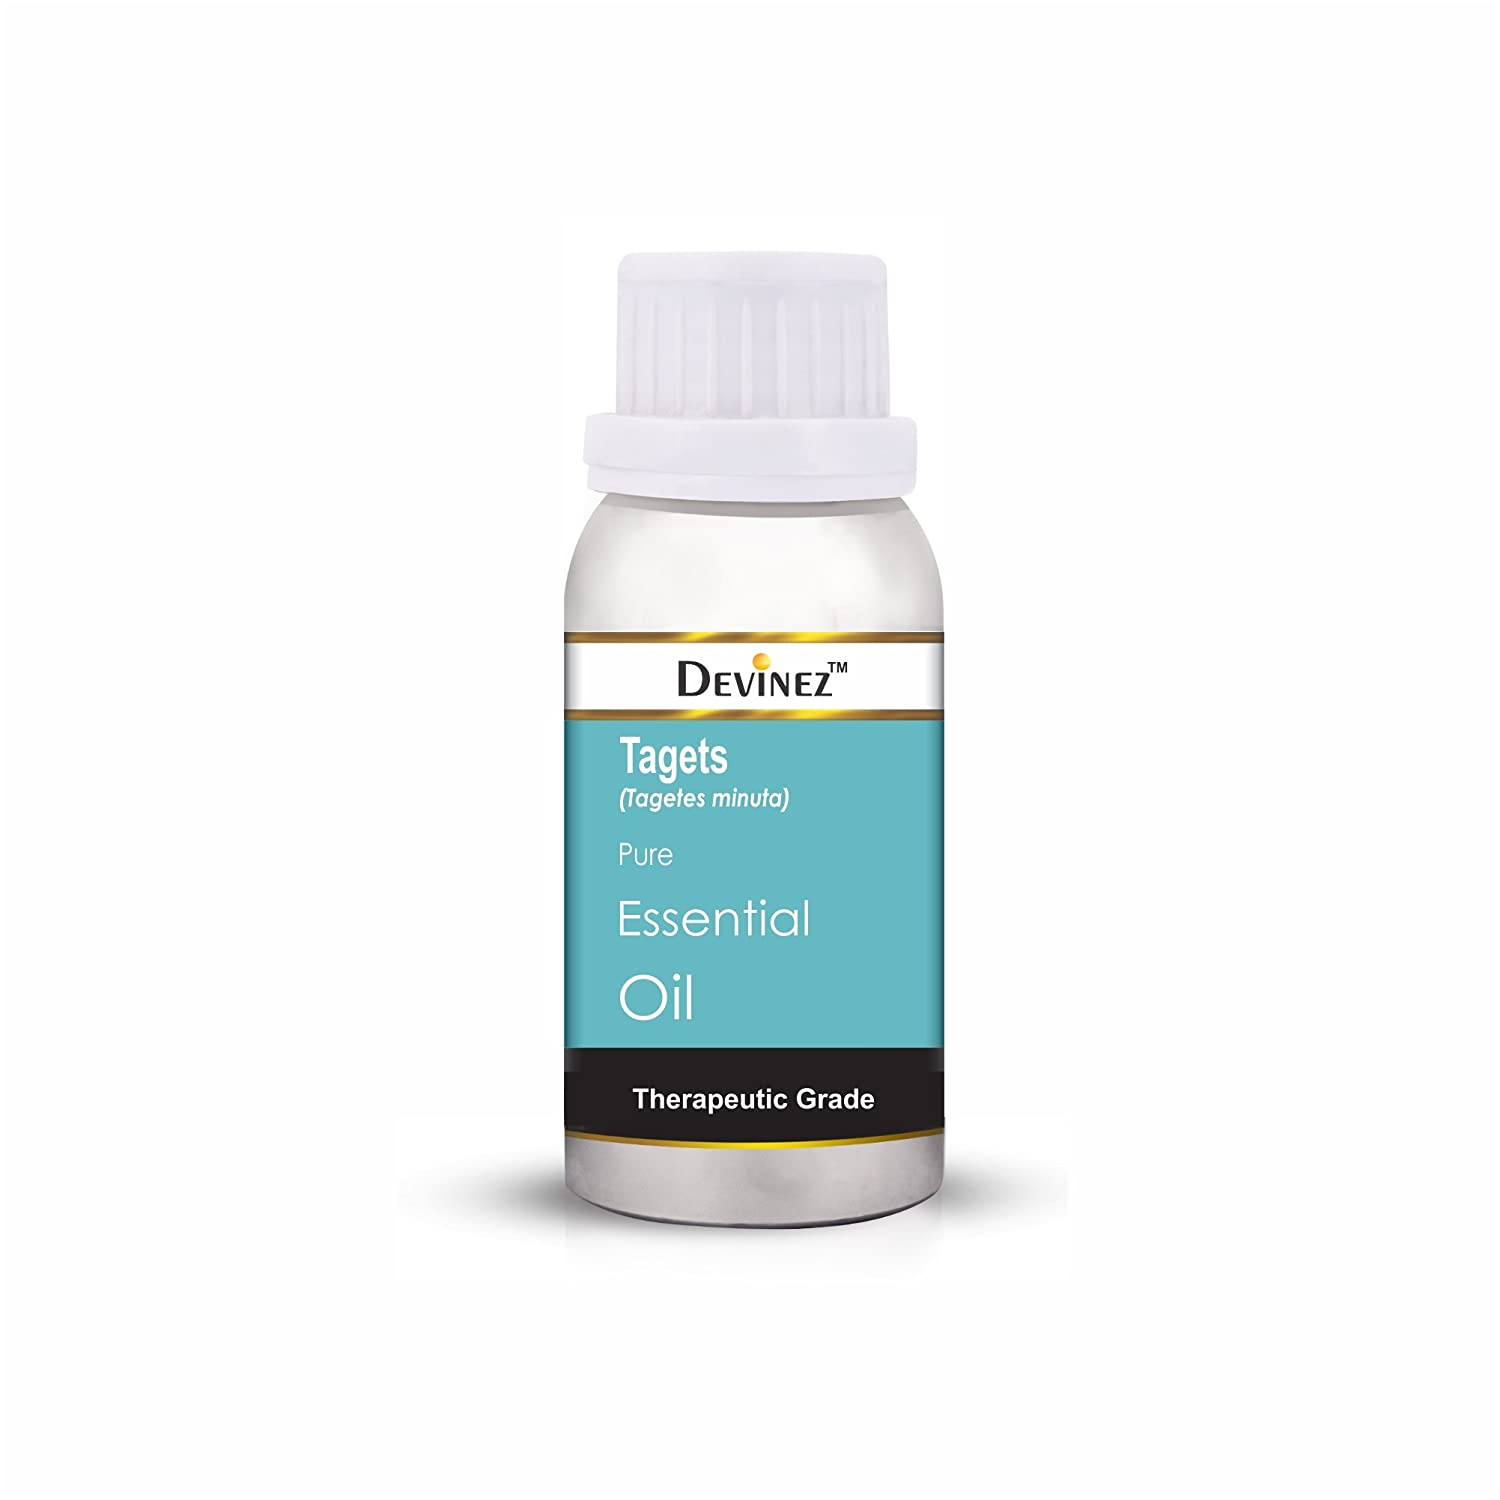 Devinez Tagets Essential Oil, 100% Pure, Natural &